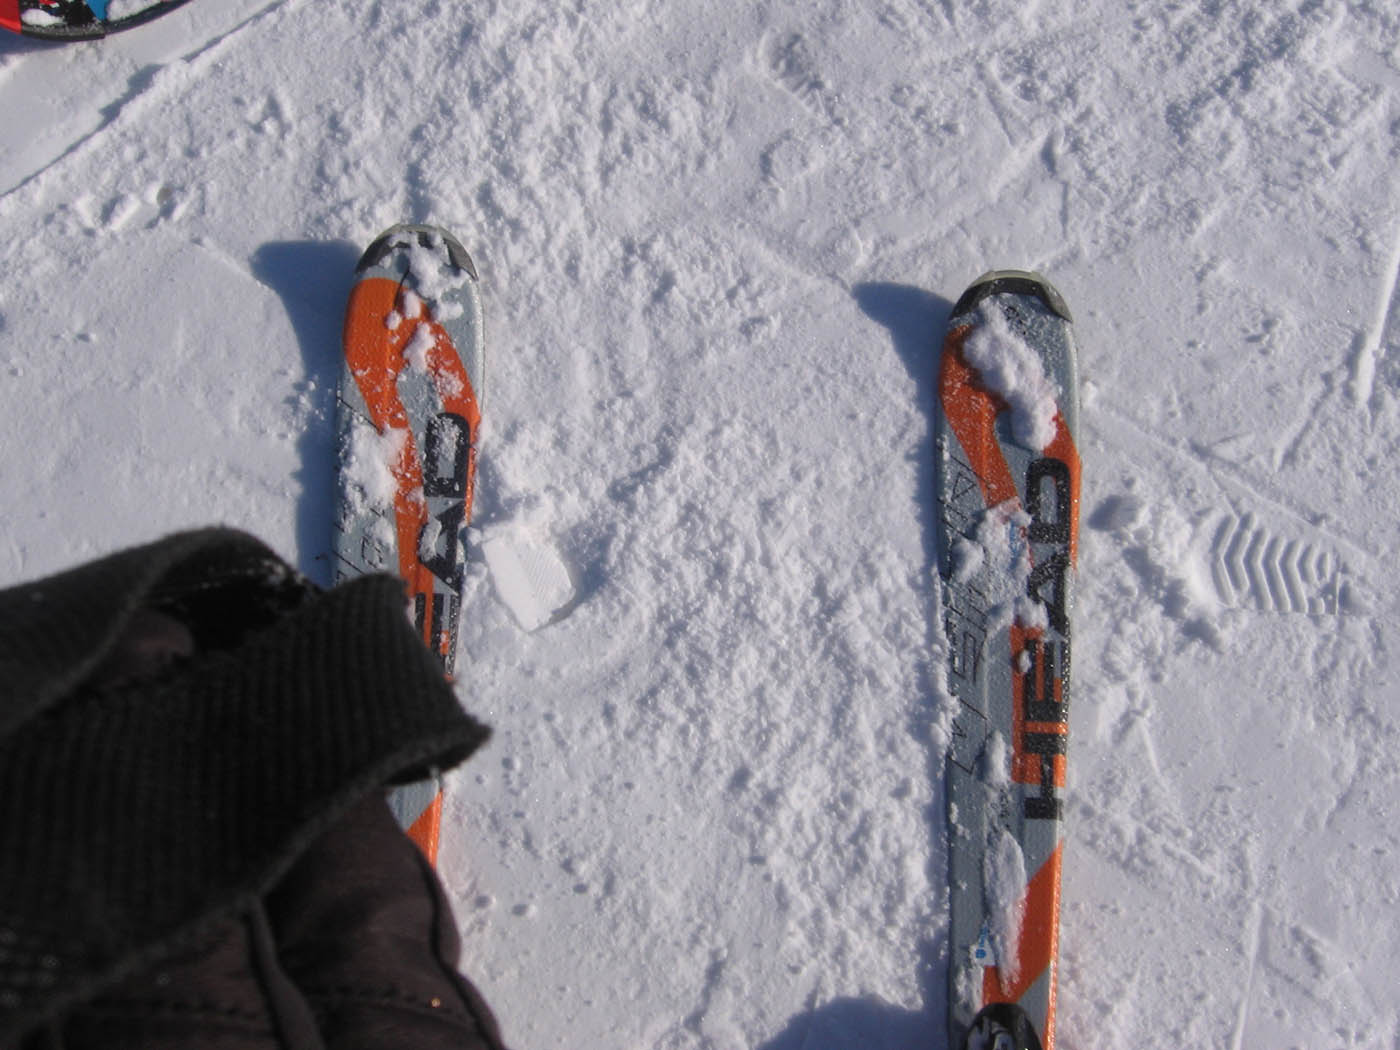 Picture of my skies to prove I skied on our Ski Trip in Petoskey, Michigan